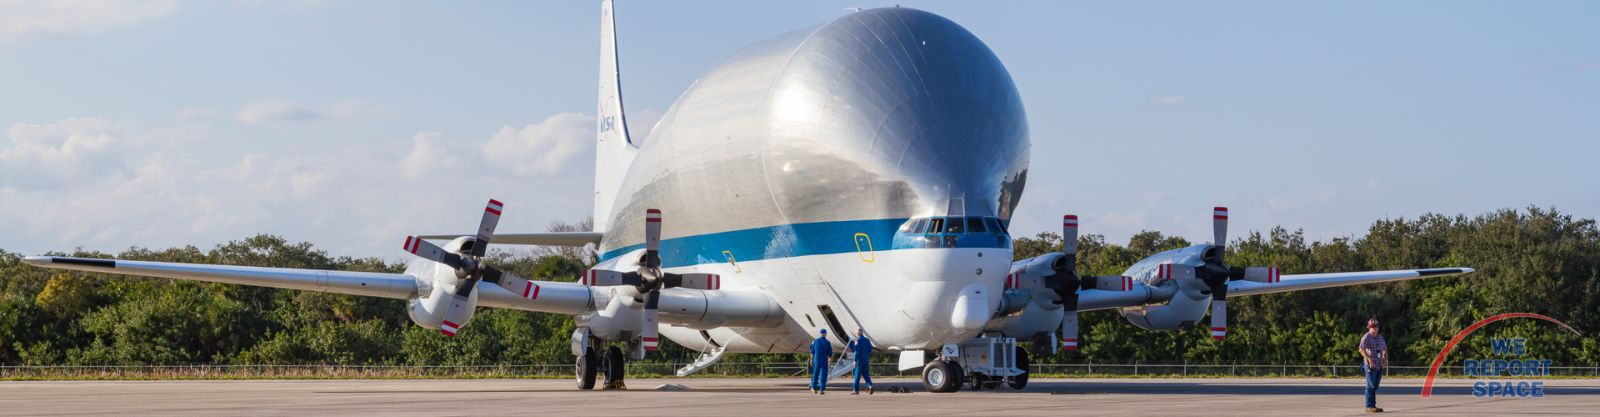 EM-1 Orion arrives at NASA's Kennedy Space Center in Florida. Photo Credit: Michael Seeley / We Report Space